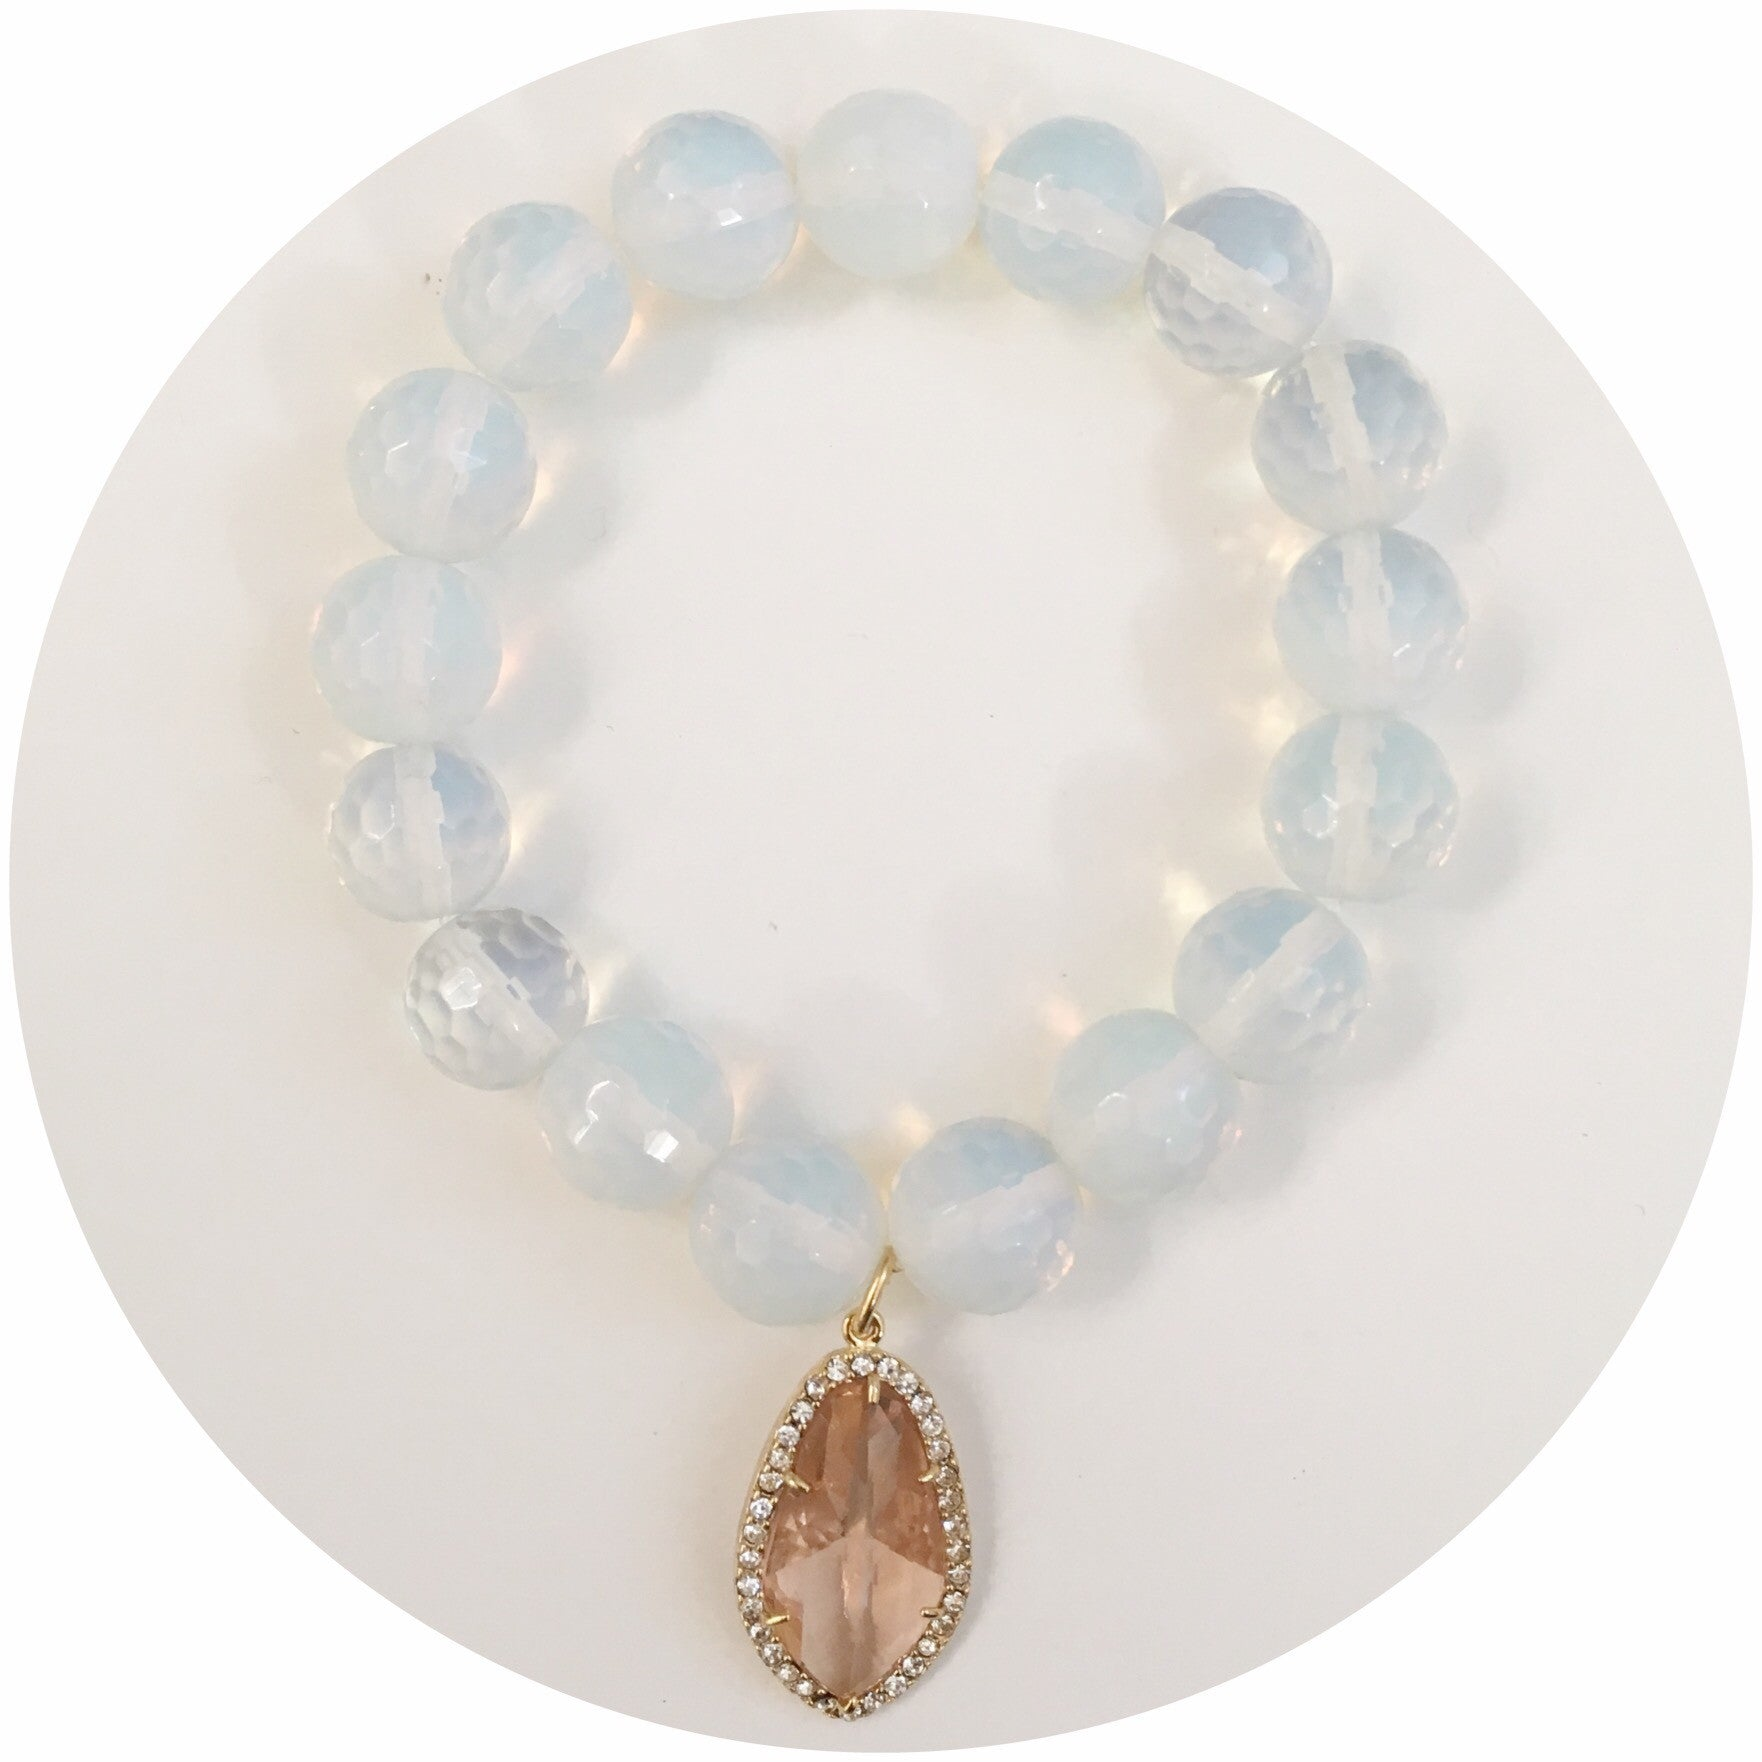 Opalite with Pavé Peach Crystal Point Pendant - Oriana Lamarca LLC